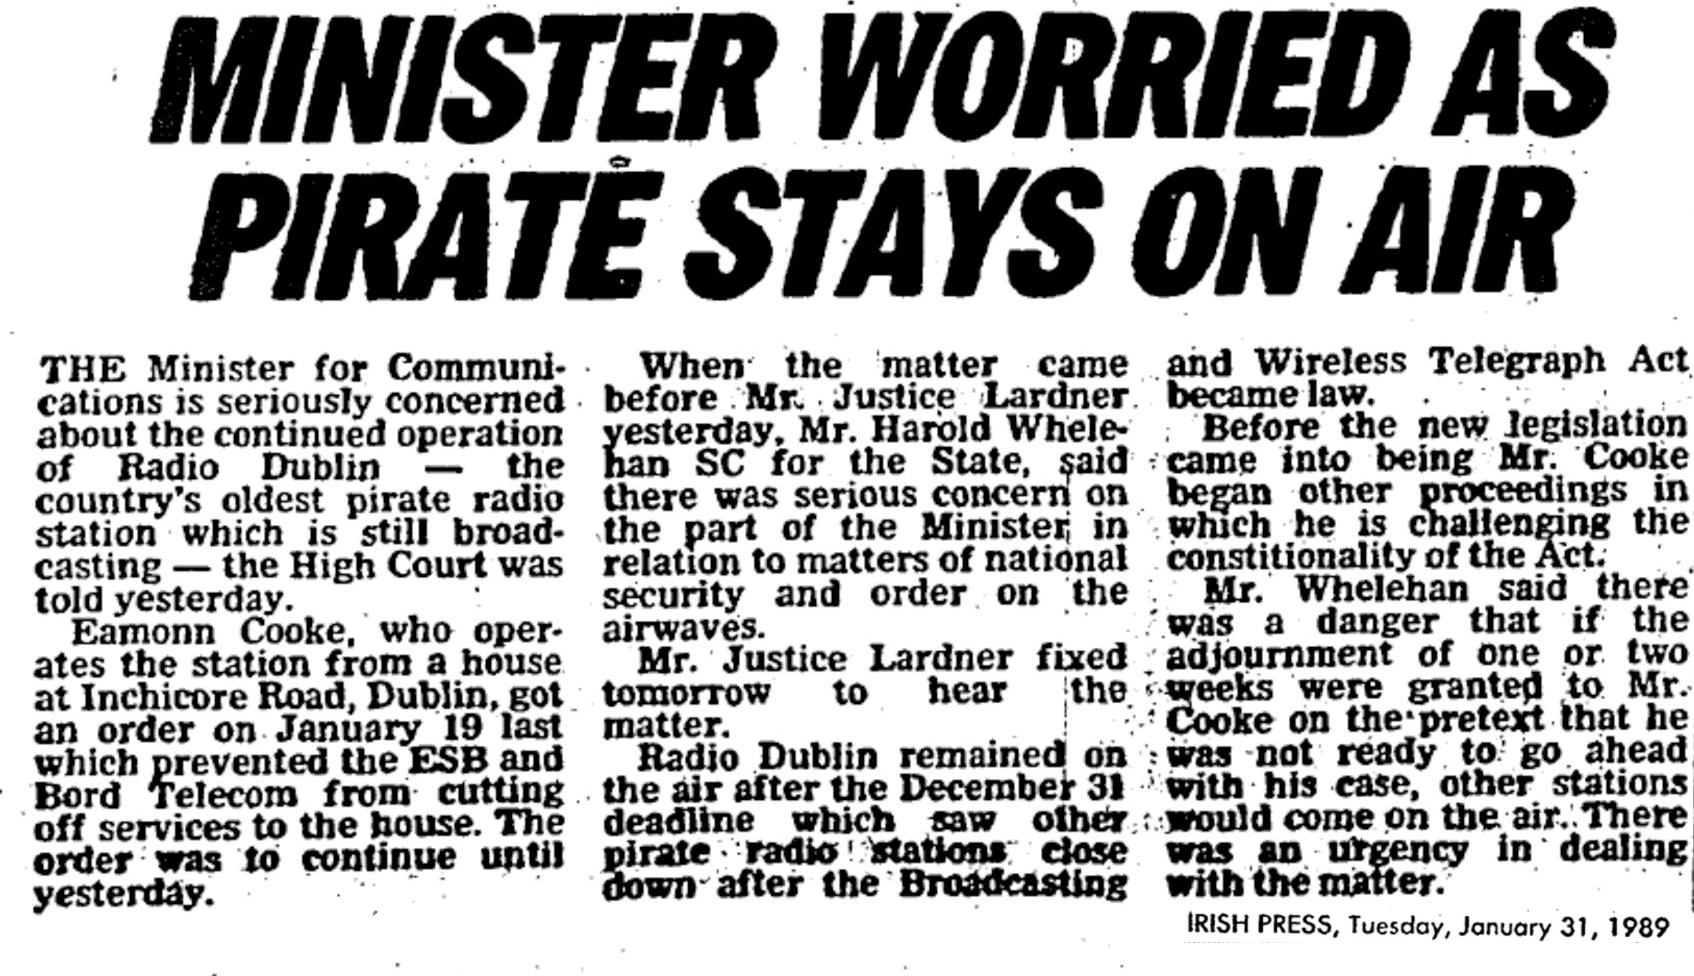 Minister worried as pirate stays on air is a headline from The Irish Press from January 31st 1989.